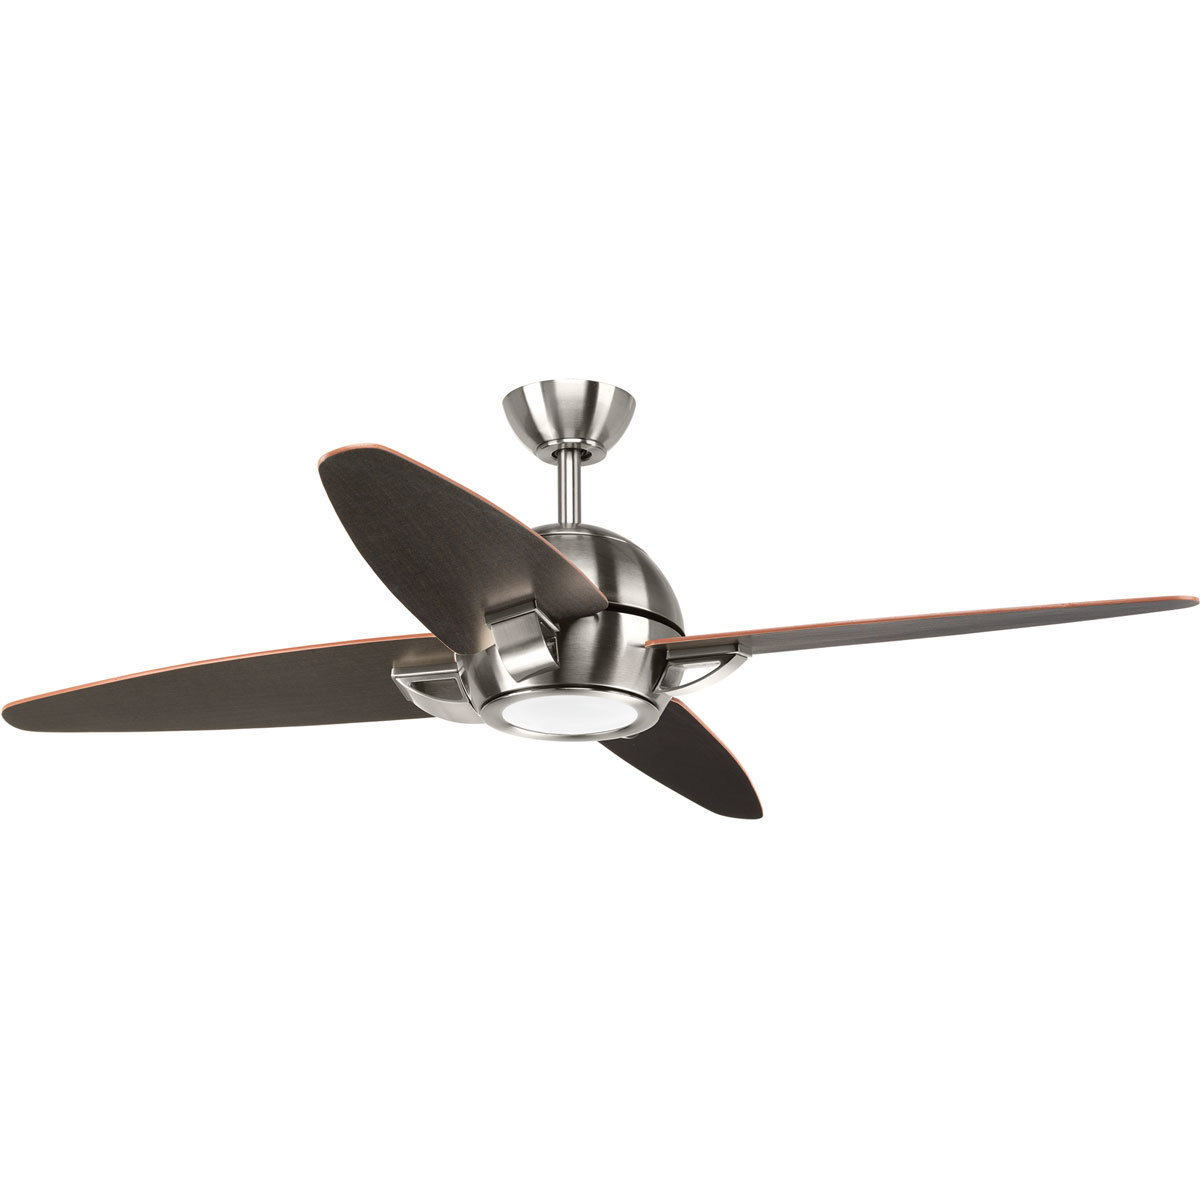 "Famous 54"" Dirks 5 Blade Led Ceiling Fan With Remote With Wilburton 5 Blade Ceiling Fans With Remote (View 6 of 20)"